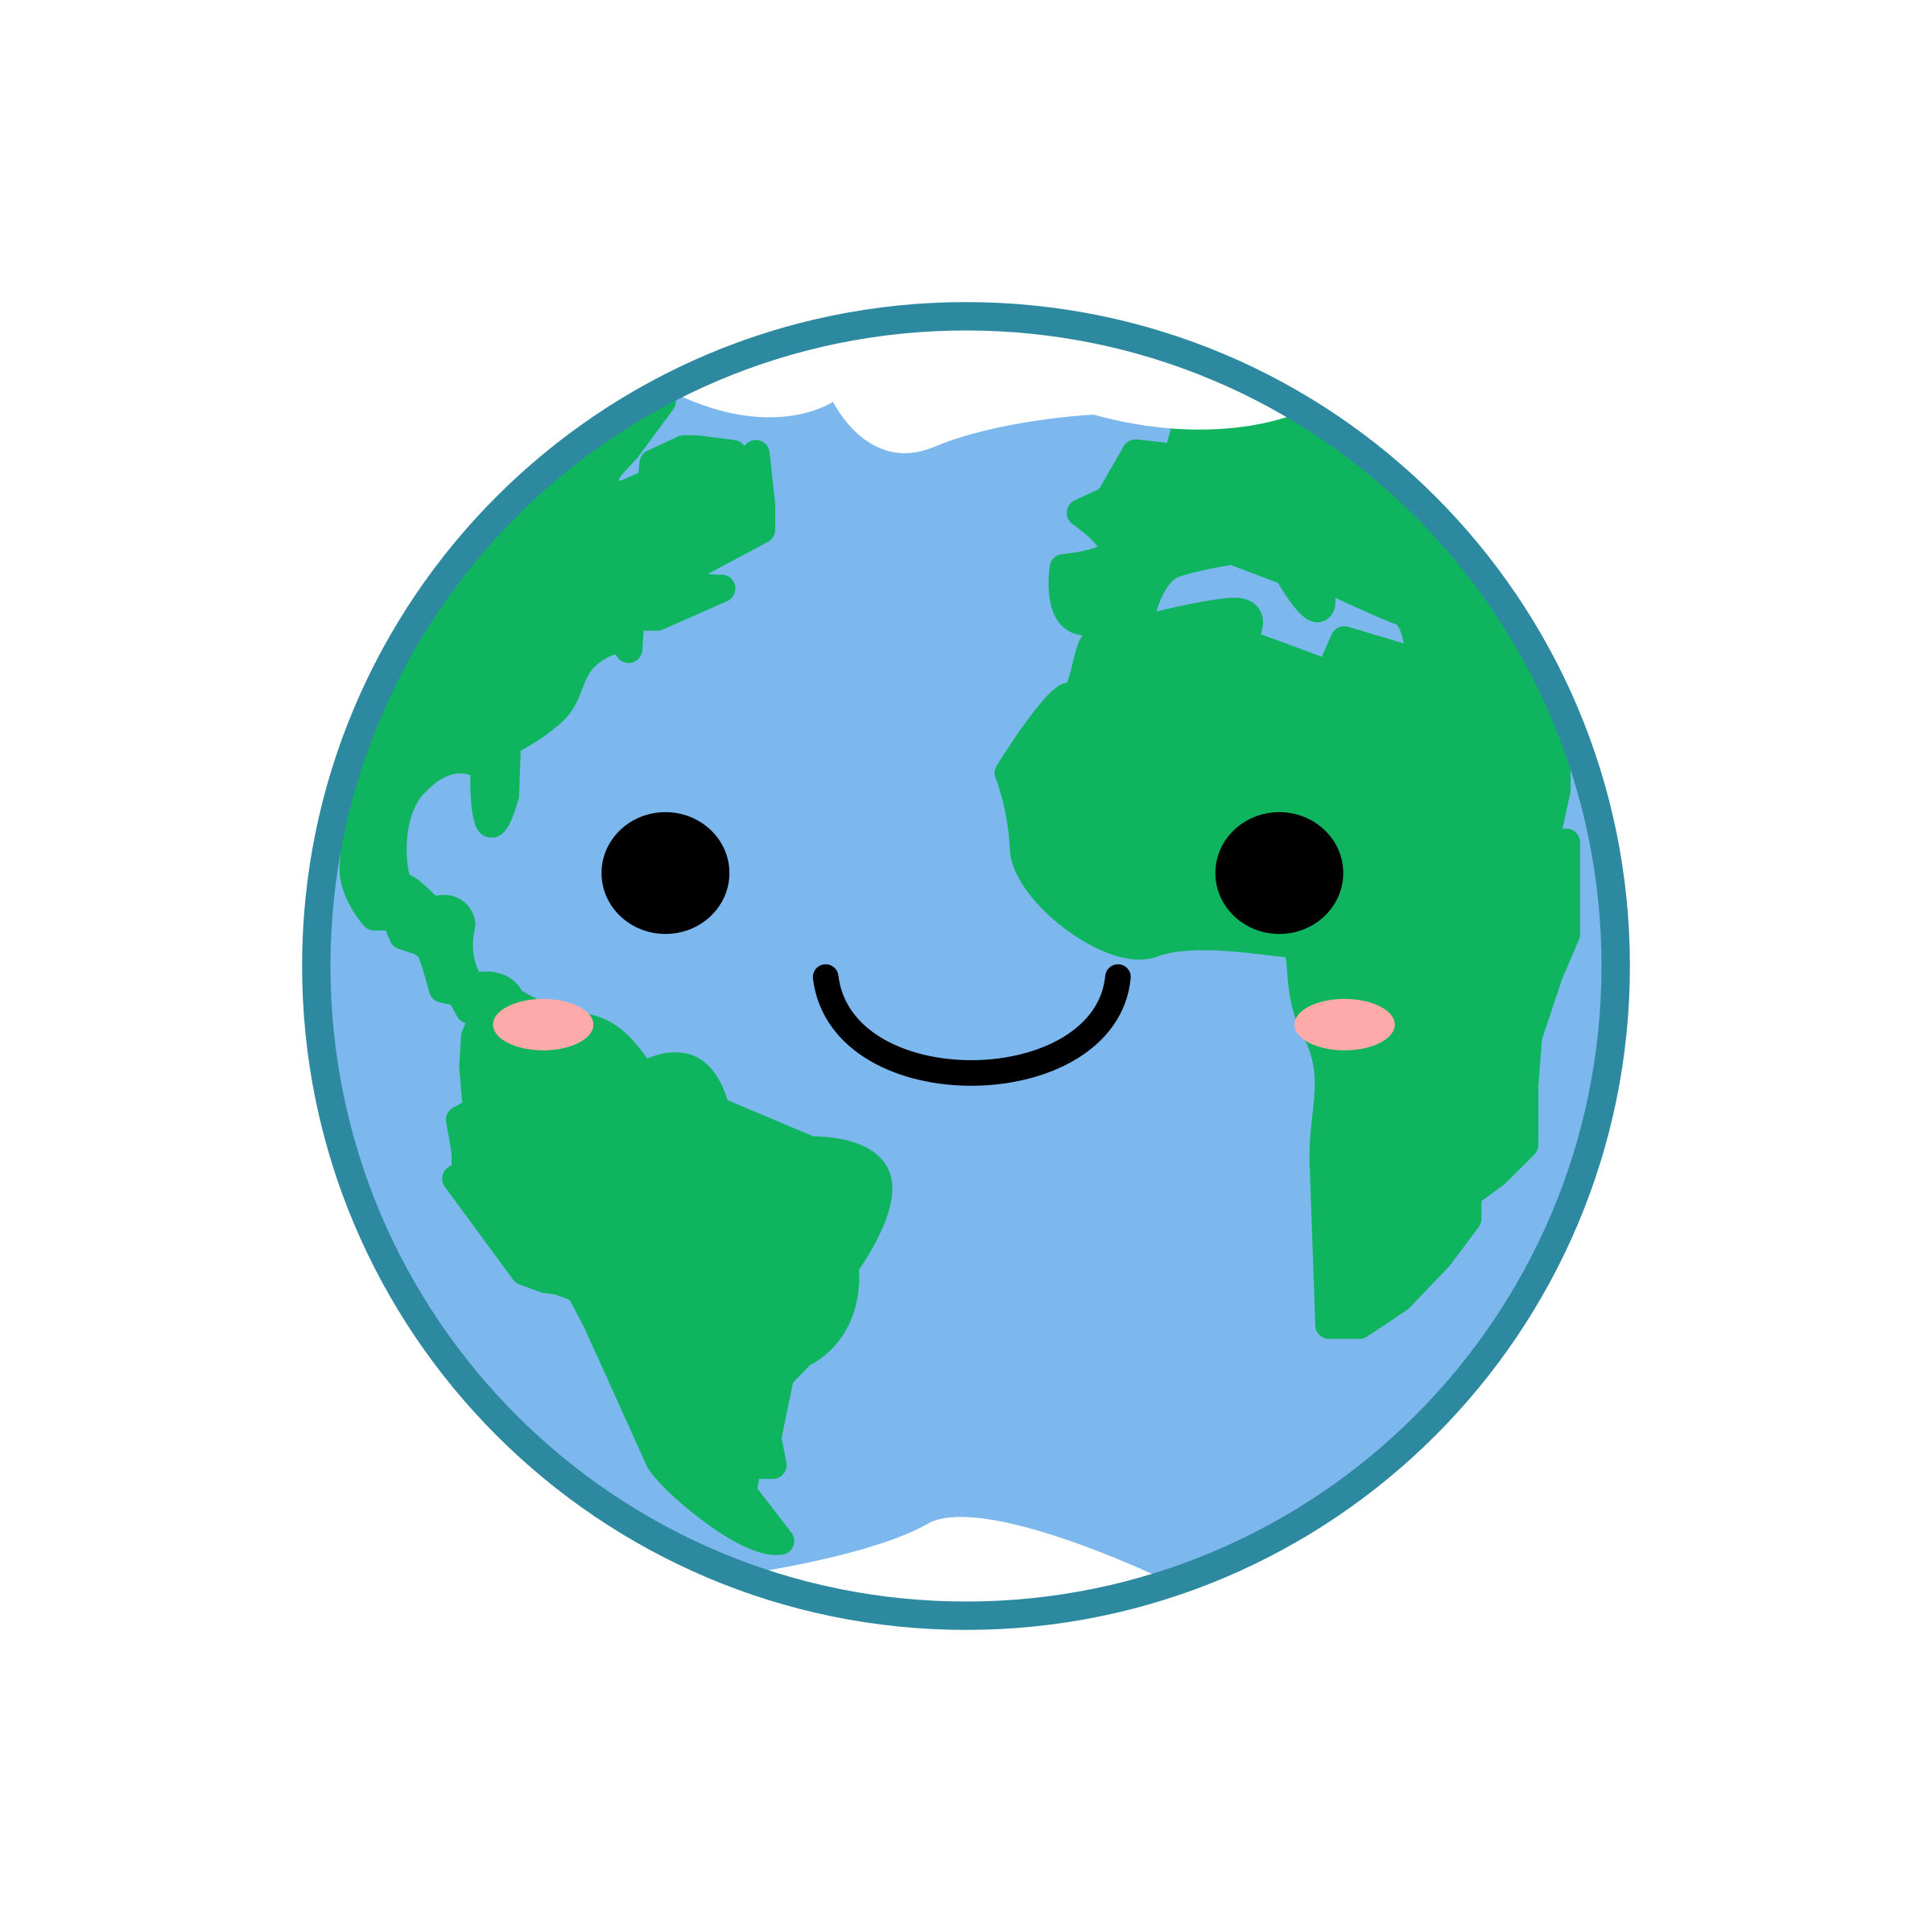 Earth clipart art, Earth art Transparent FREE for download.